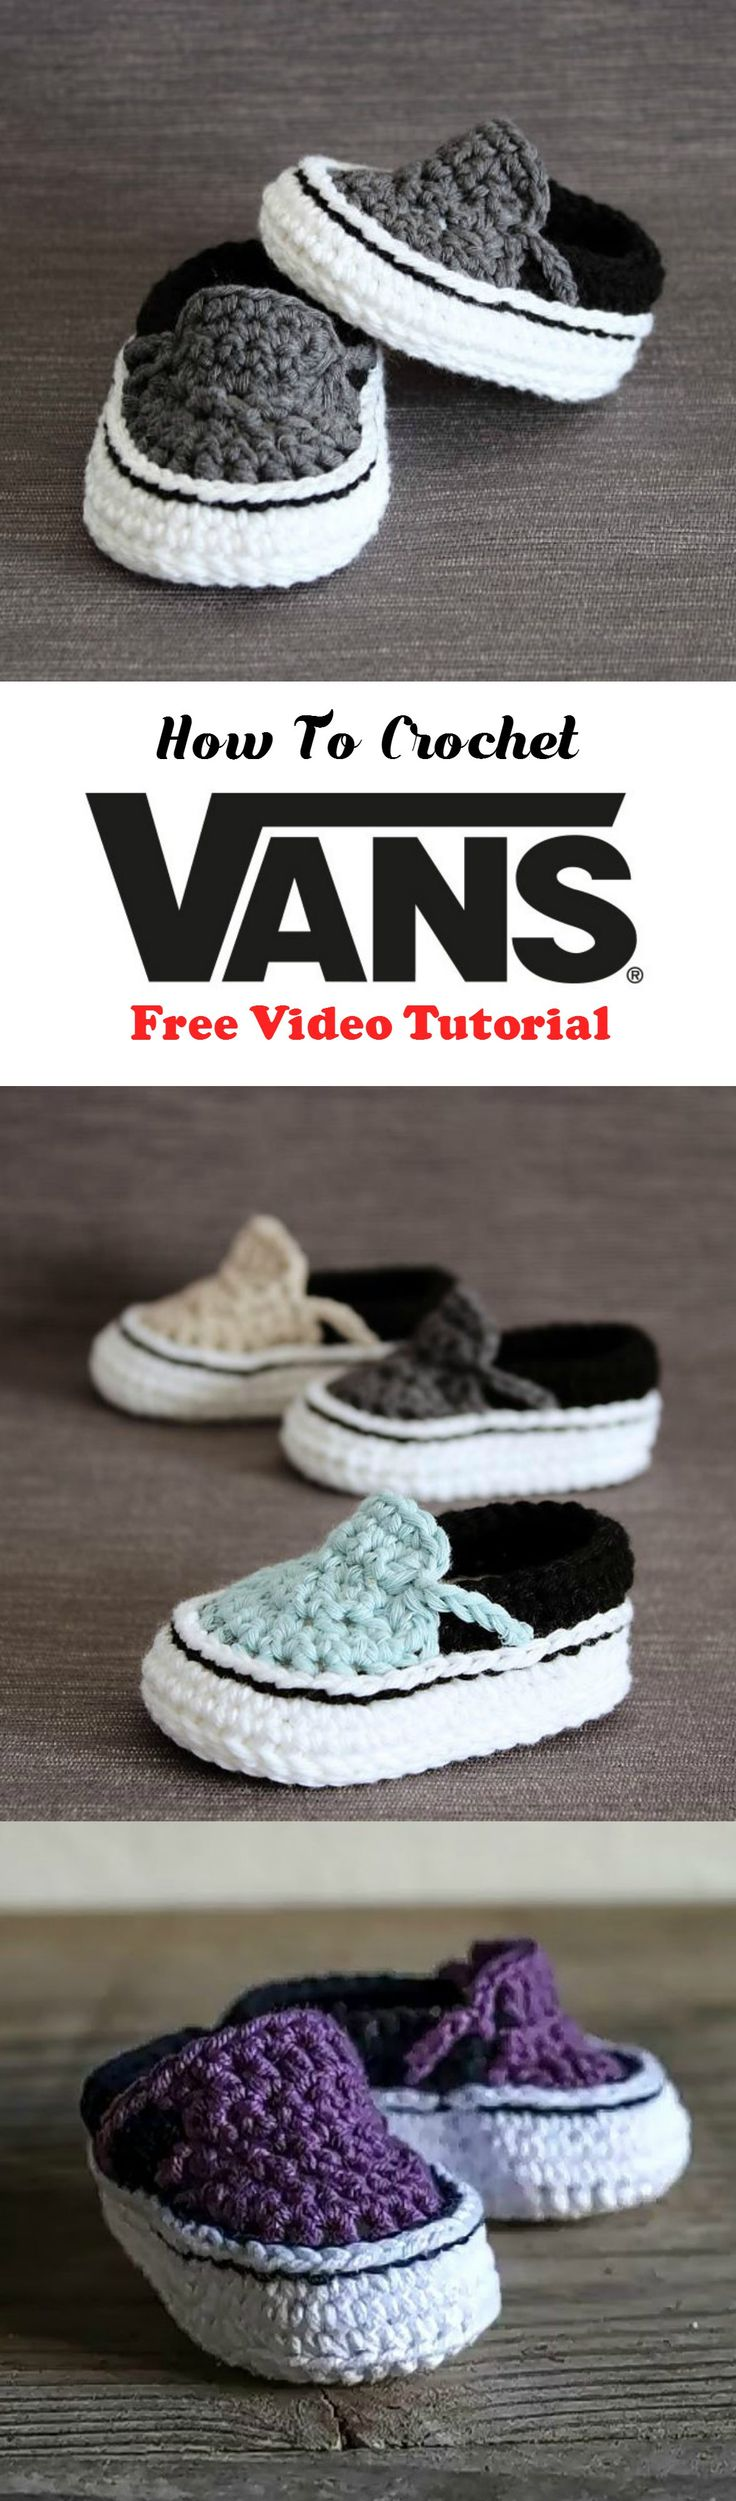 Here today we have found fantastic Free Video Lesson where You can learn everything step by step what you need to crochet these awesome and fashionable Vans shoes for you little angels. Look at these shoes and imagine how pretty and cute will look your children in every situations. Thanks to authors for Pictures and This awesome tutorial. It's in English and we think you will understand everything easily. If you Don't Know English you can follow hands of author or Use Translated Subtitles.